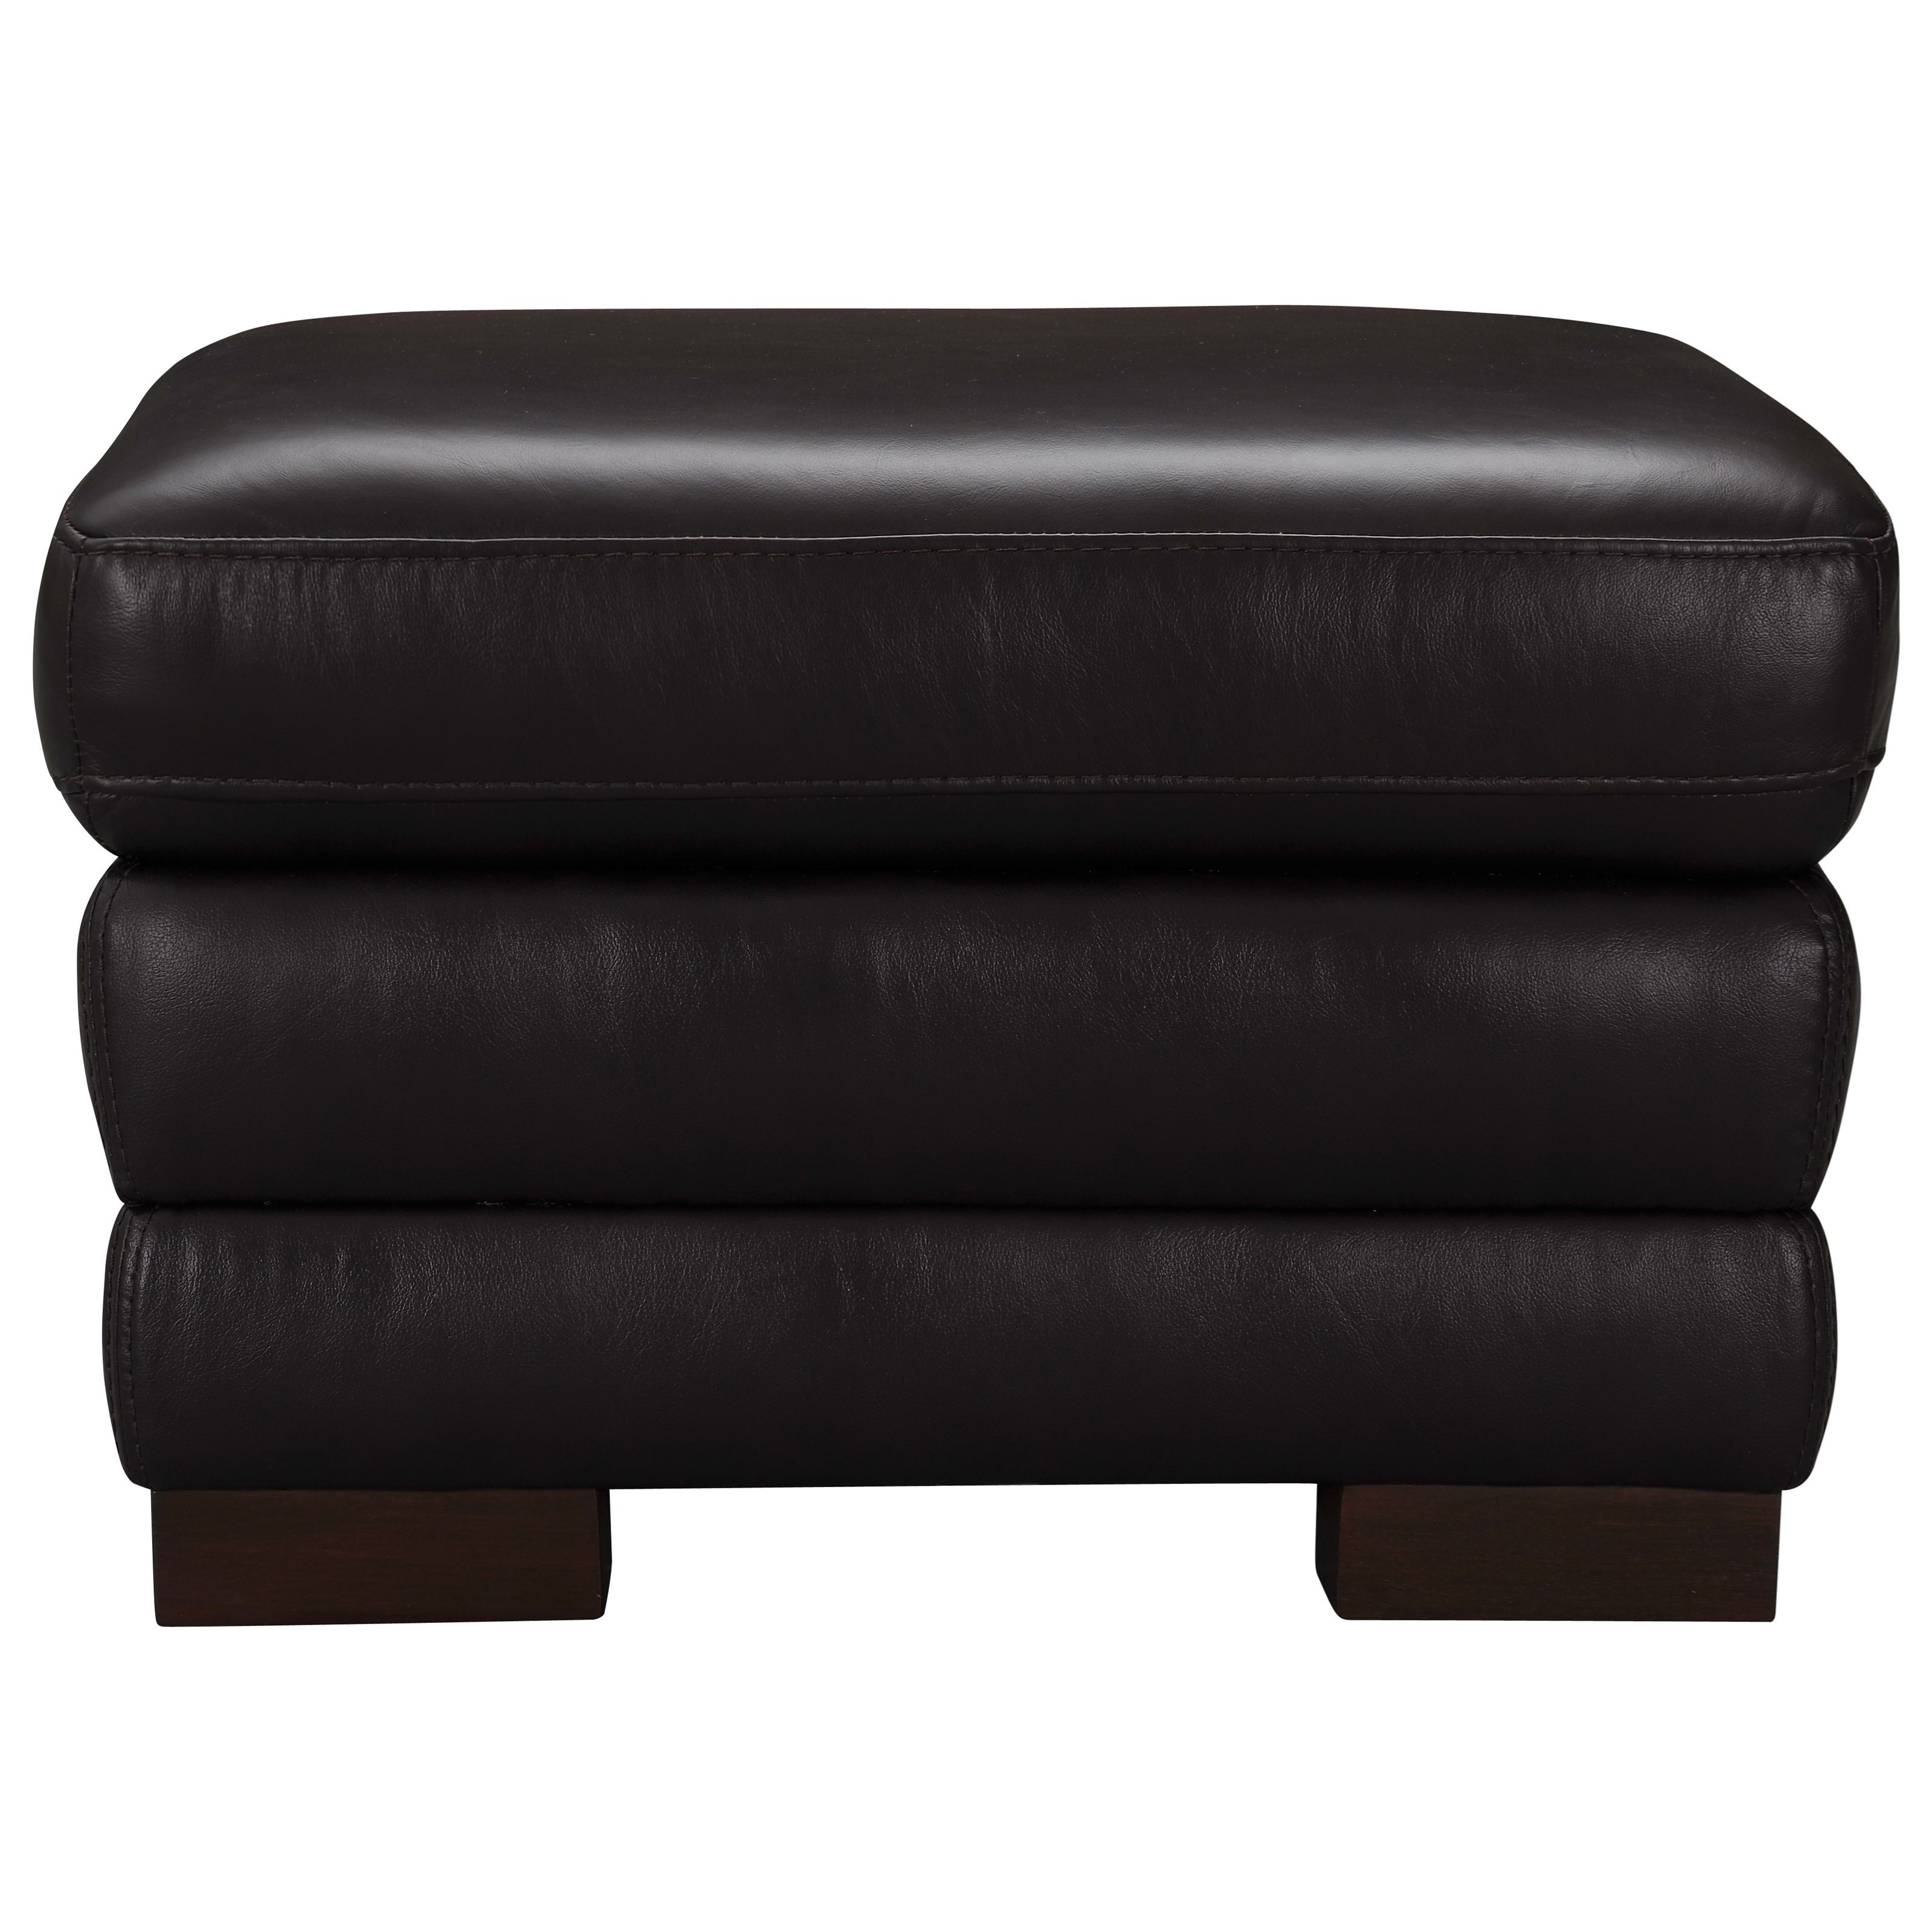 31852 Ottoman by Violino at Furniture Superstore - Rochester, MN